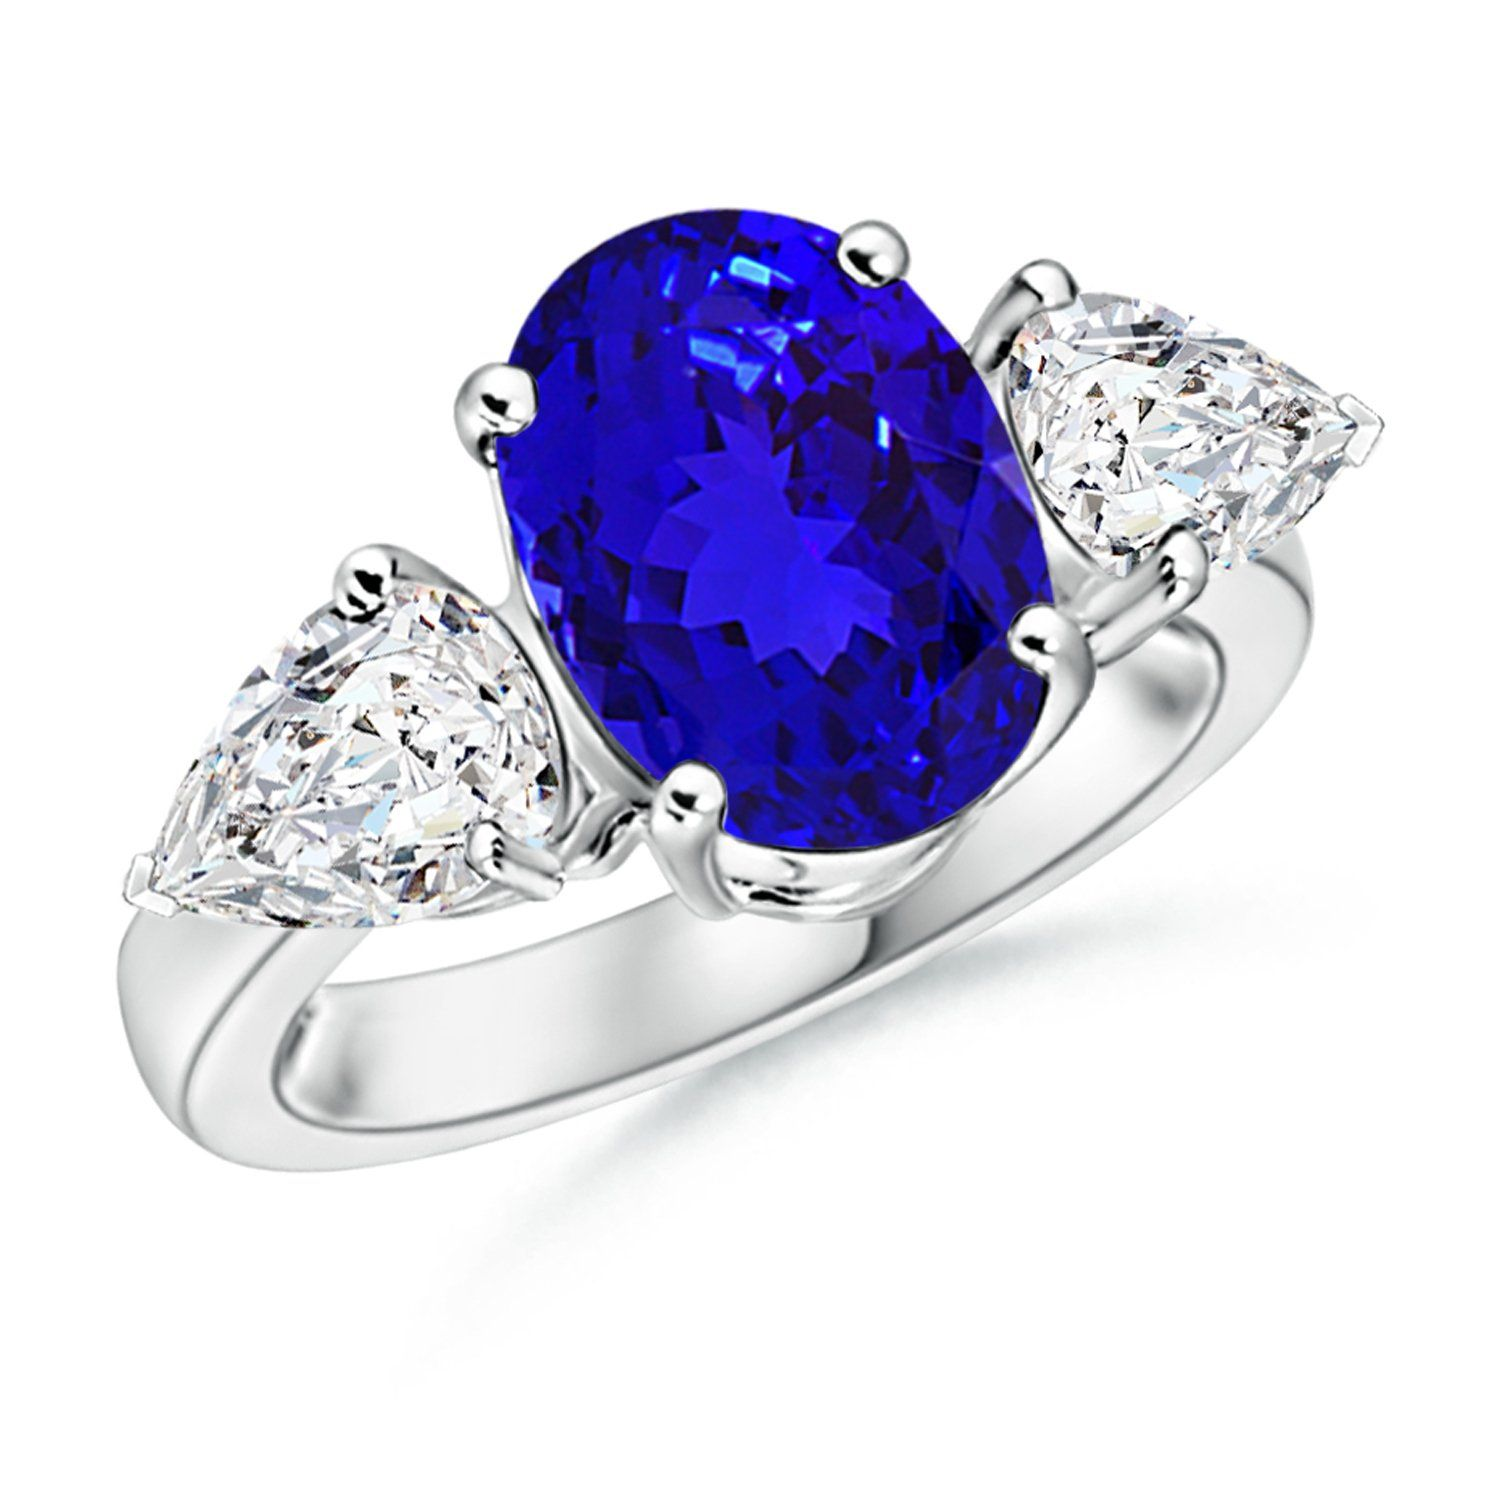 Angara Classic Trio Stone Tanzanite Diamond Solitaire Ring in 14k White Gold dhmER6aERC